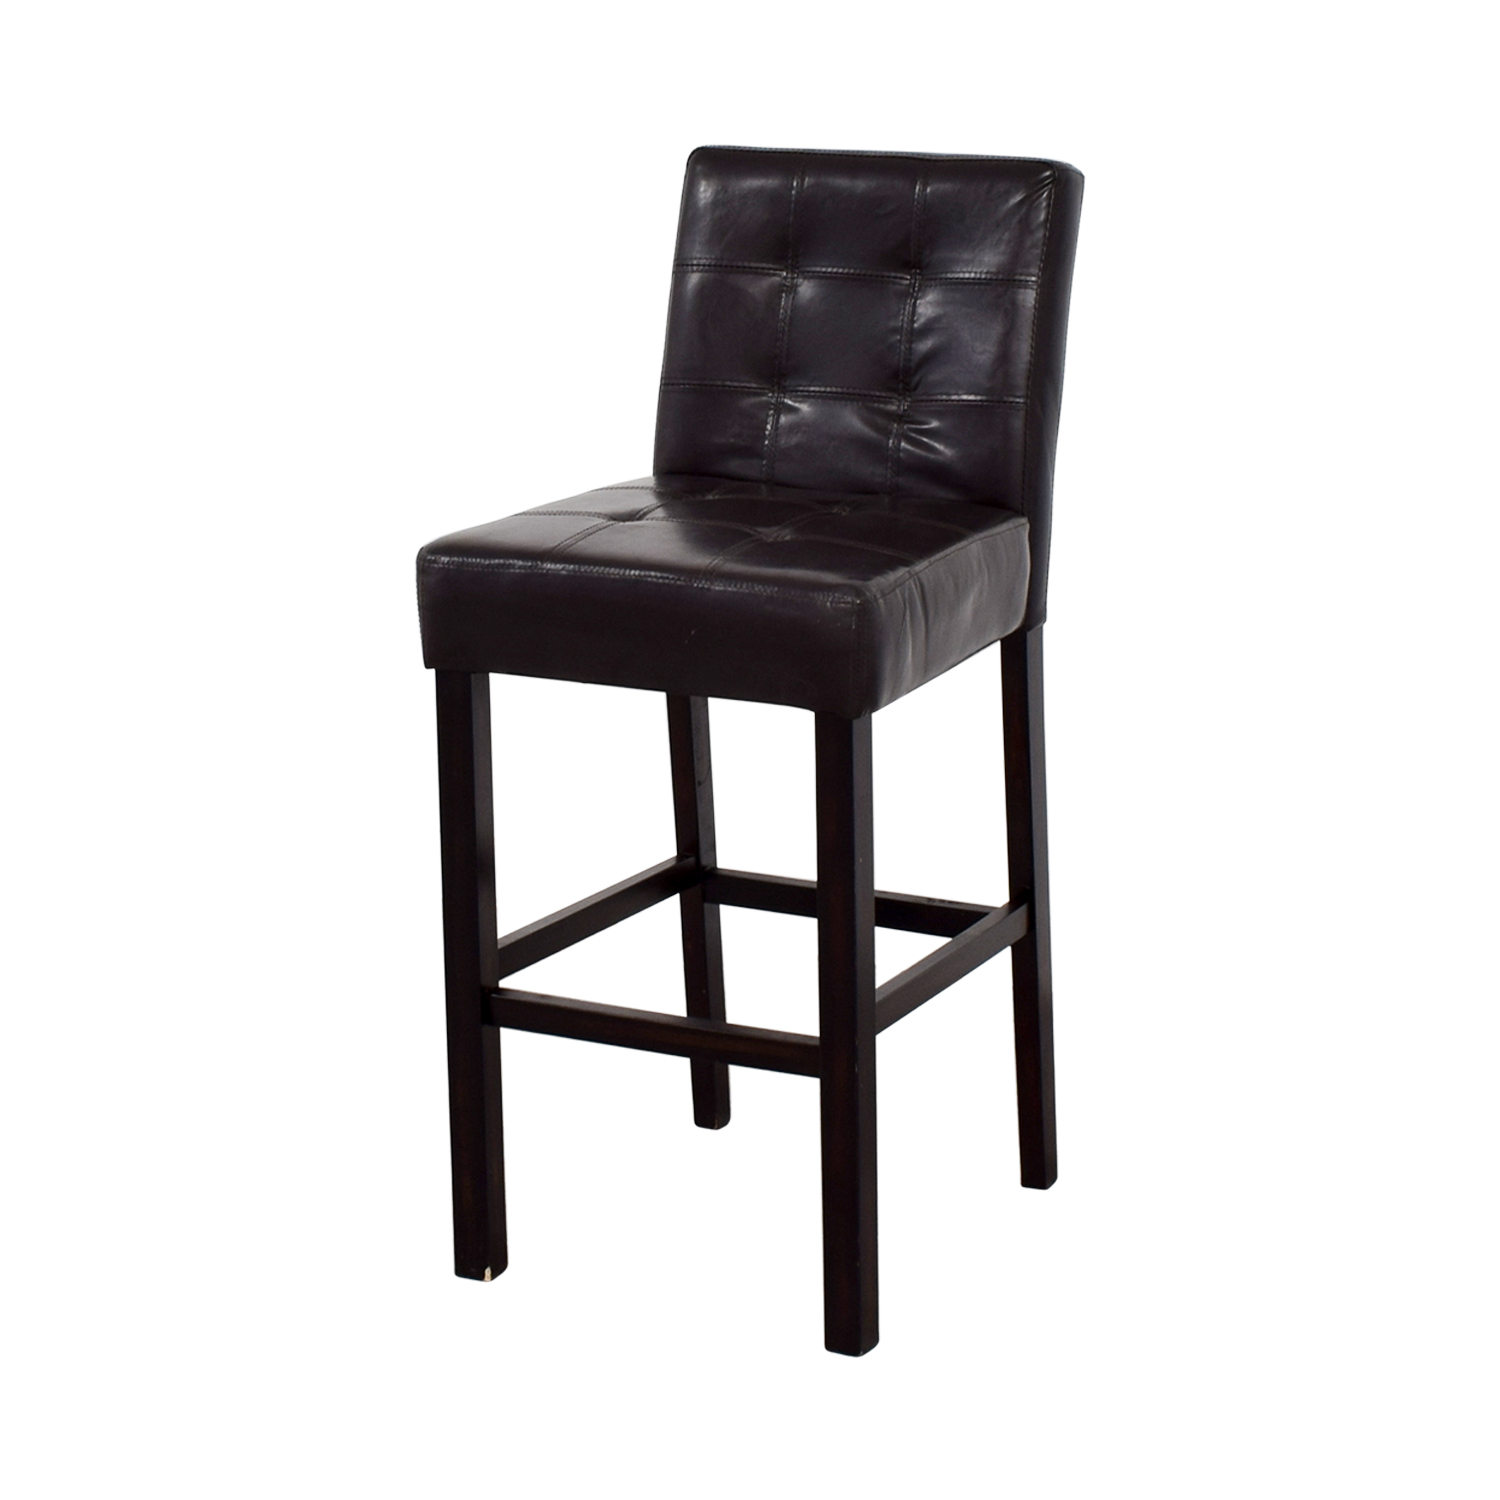 Tufted Bar Height Chair on sale